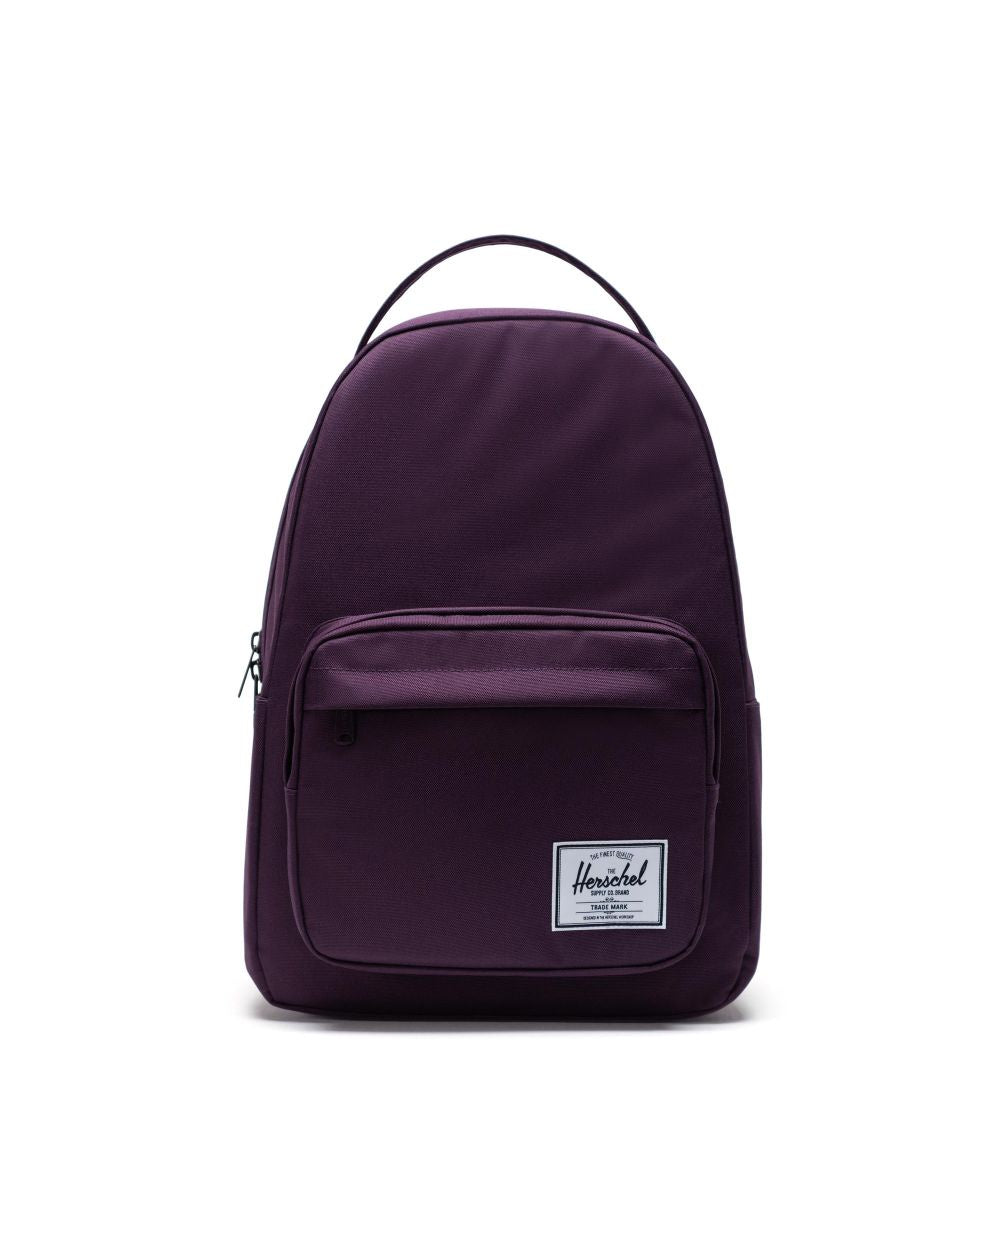 HERSCHEL - MILLER BACKPACK IN BLACKBERRY WINE